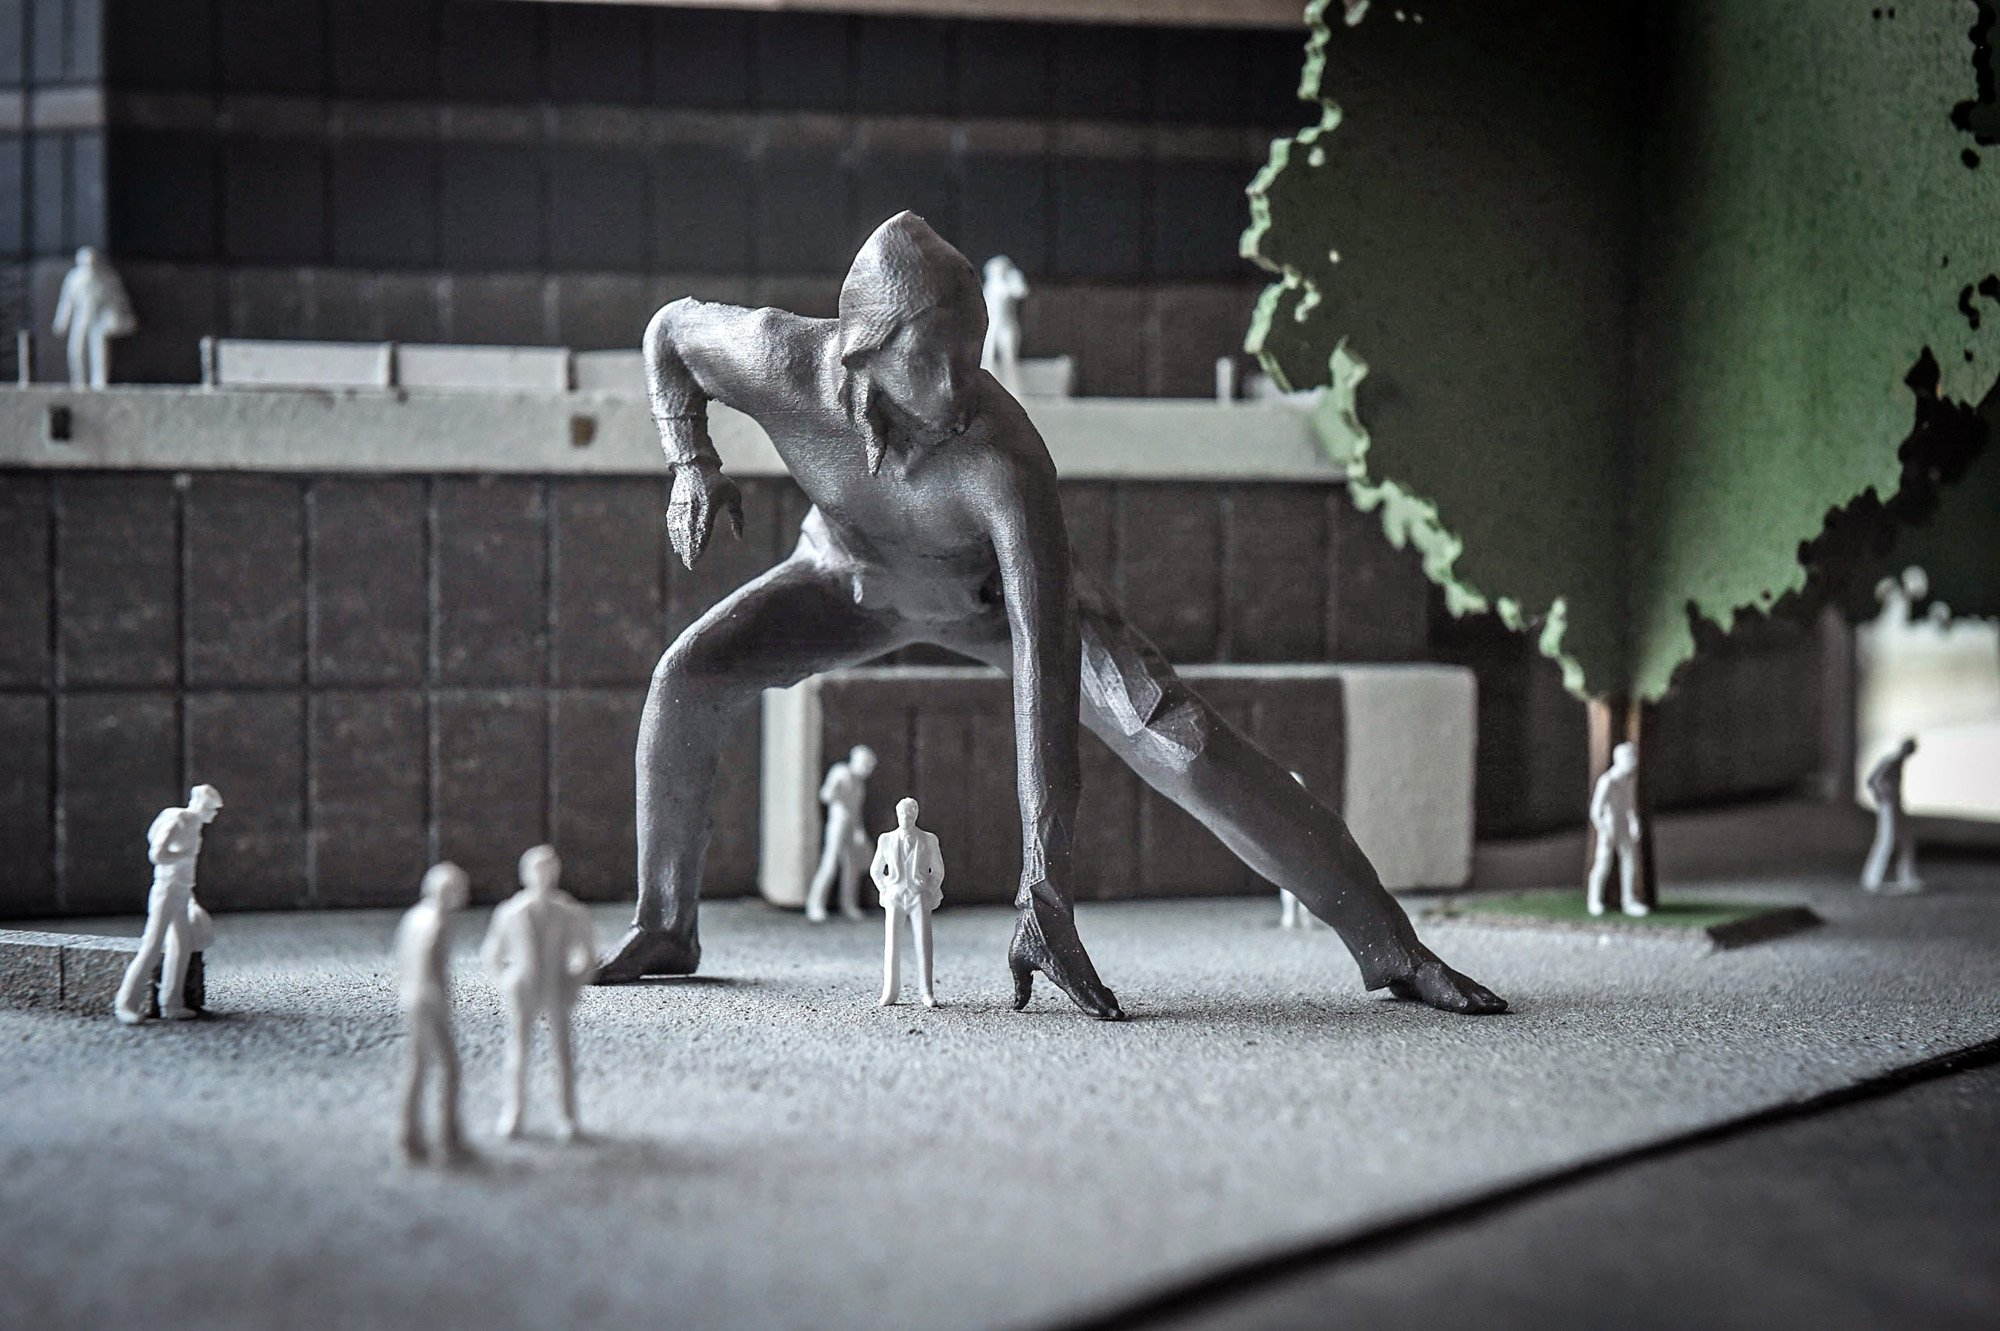 Giant bronze sculpture of squatting sex worker causes outcry